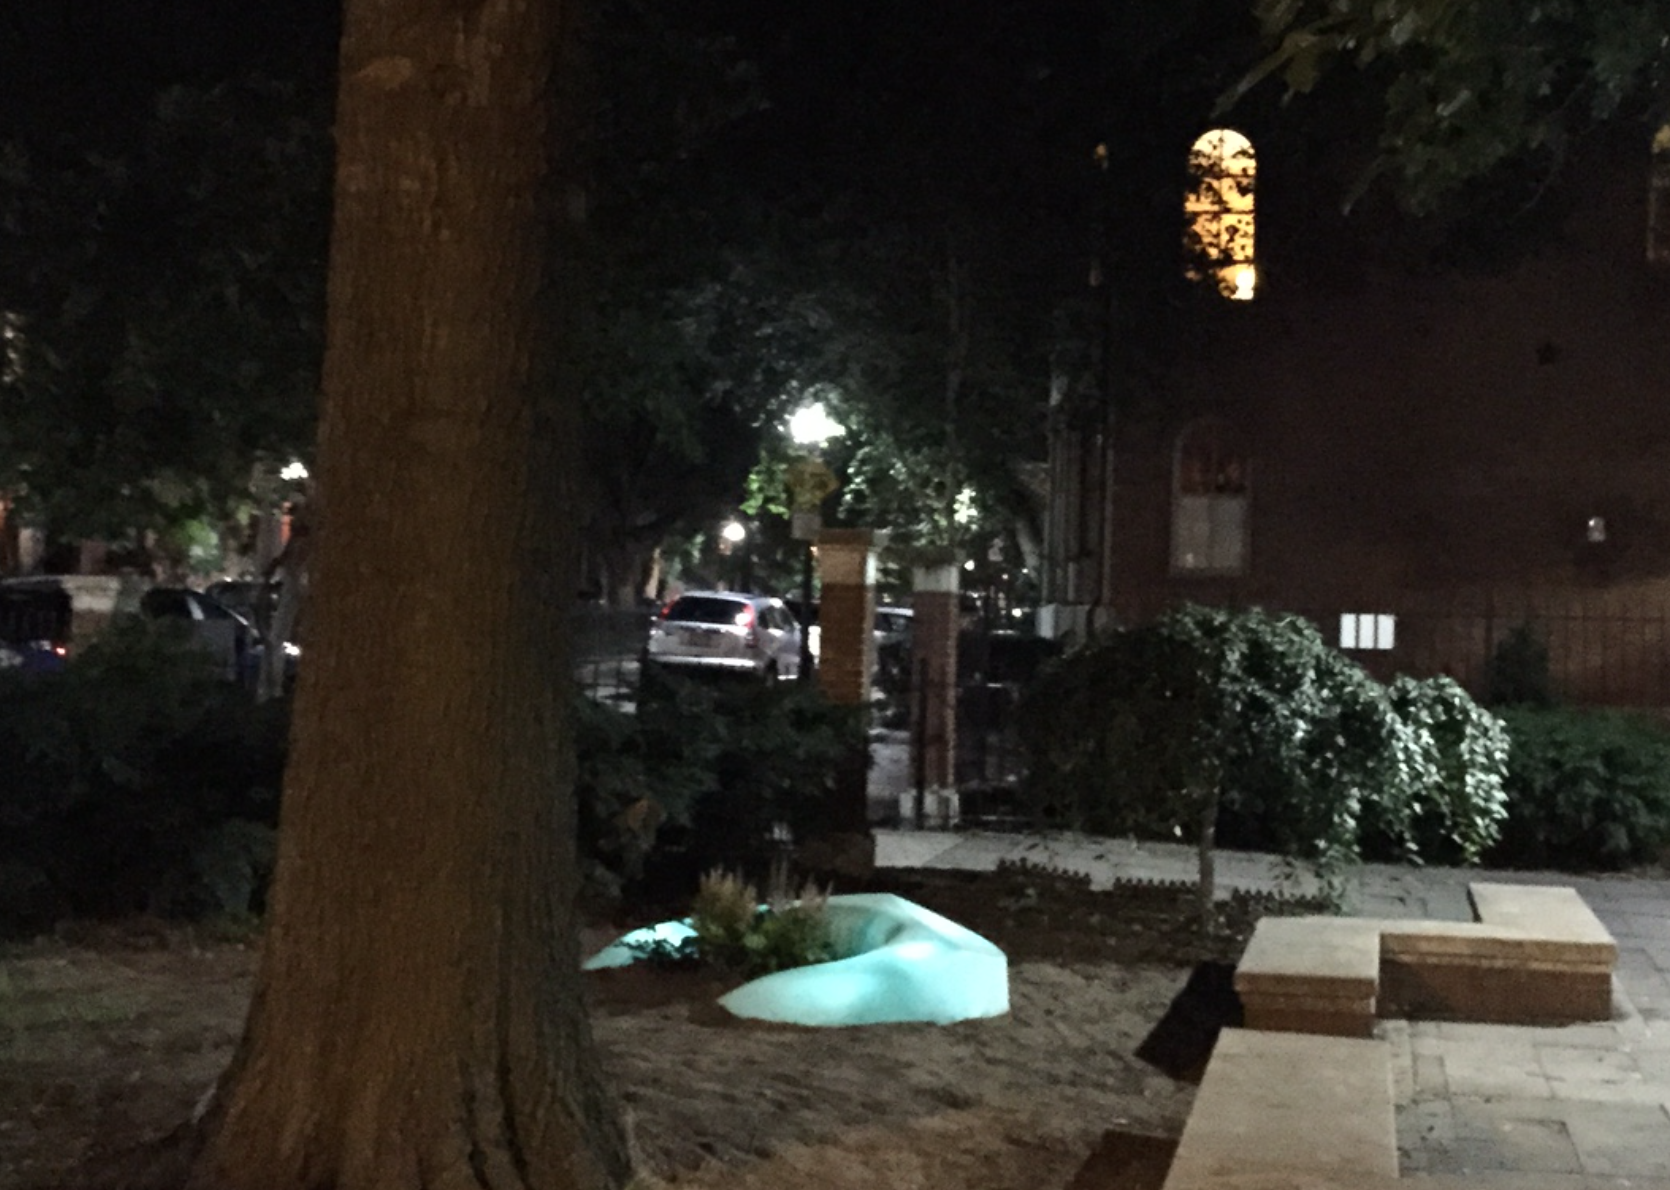 One of the two Laboy LightWells installed this weekend in Library Park